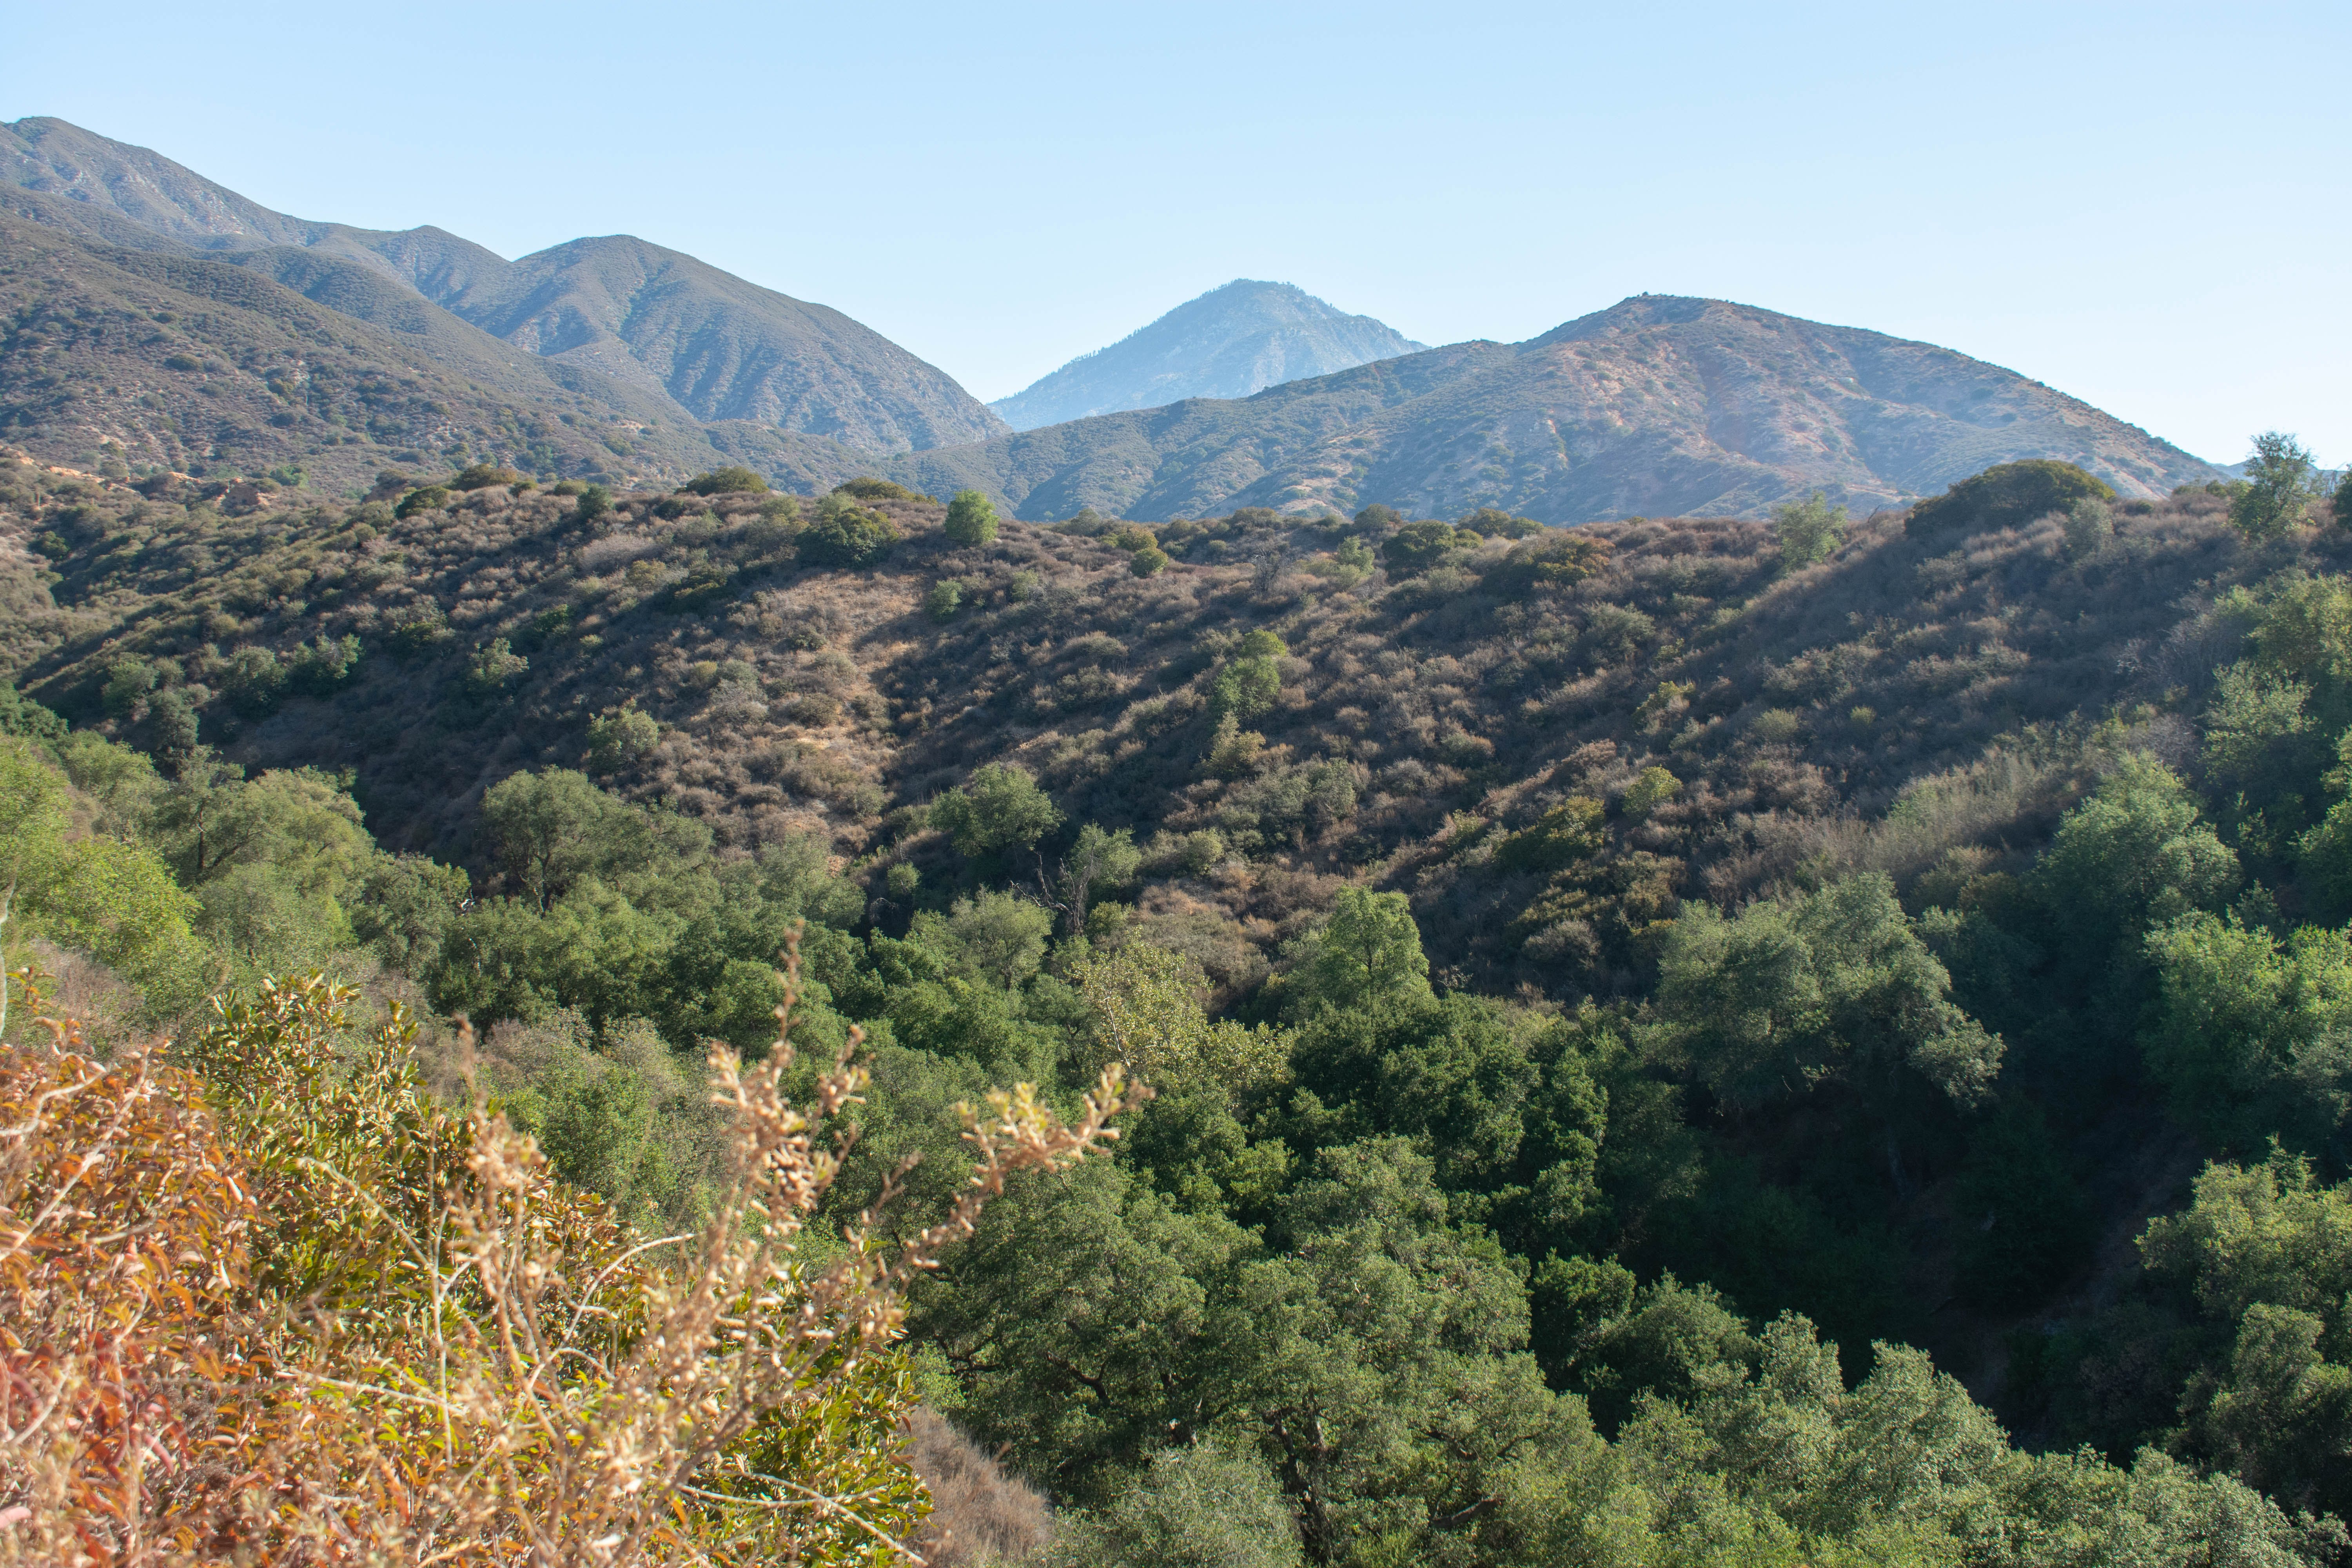 Mountainous view in Claremont Hills Wilderness Park in Los Angeles County